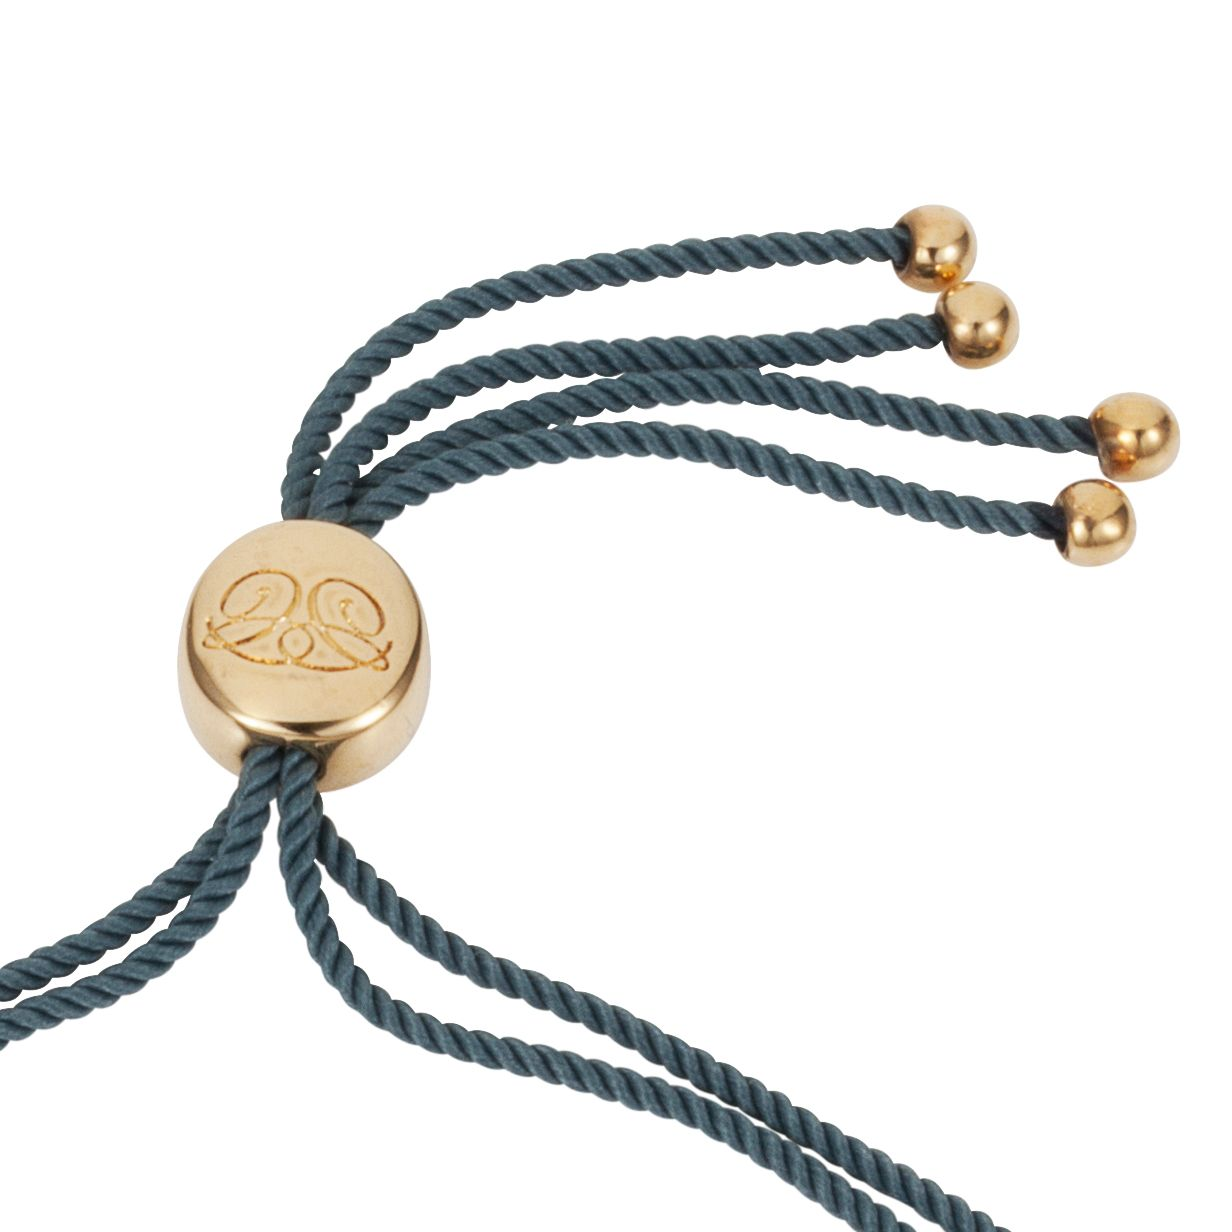 18ct gold plated titania friendship bracelet